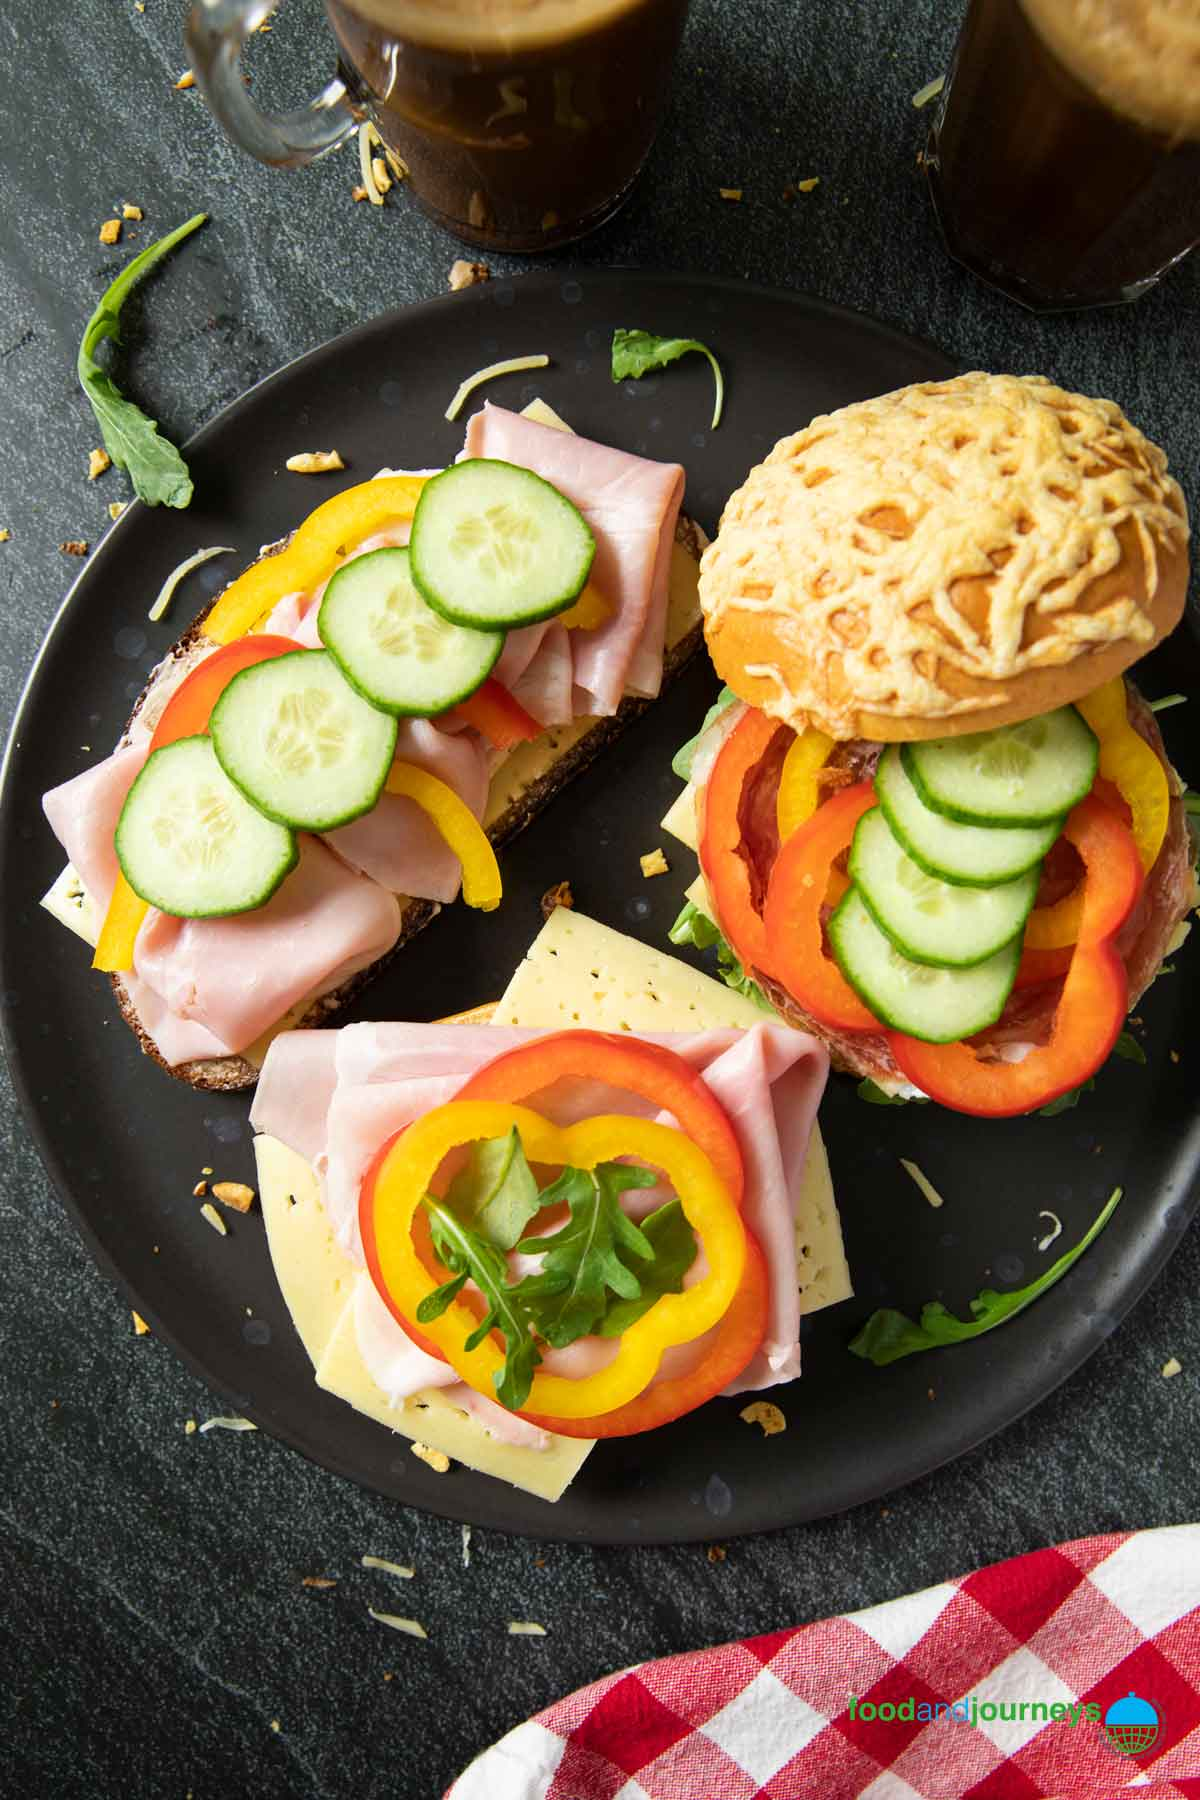 An overhead shot of usual types of sandwiches prepared for breakfast in Sweden.